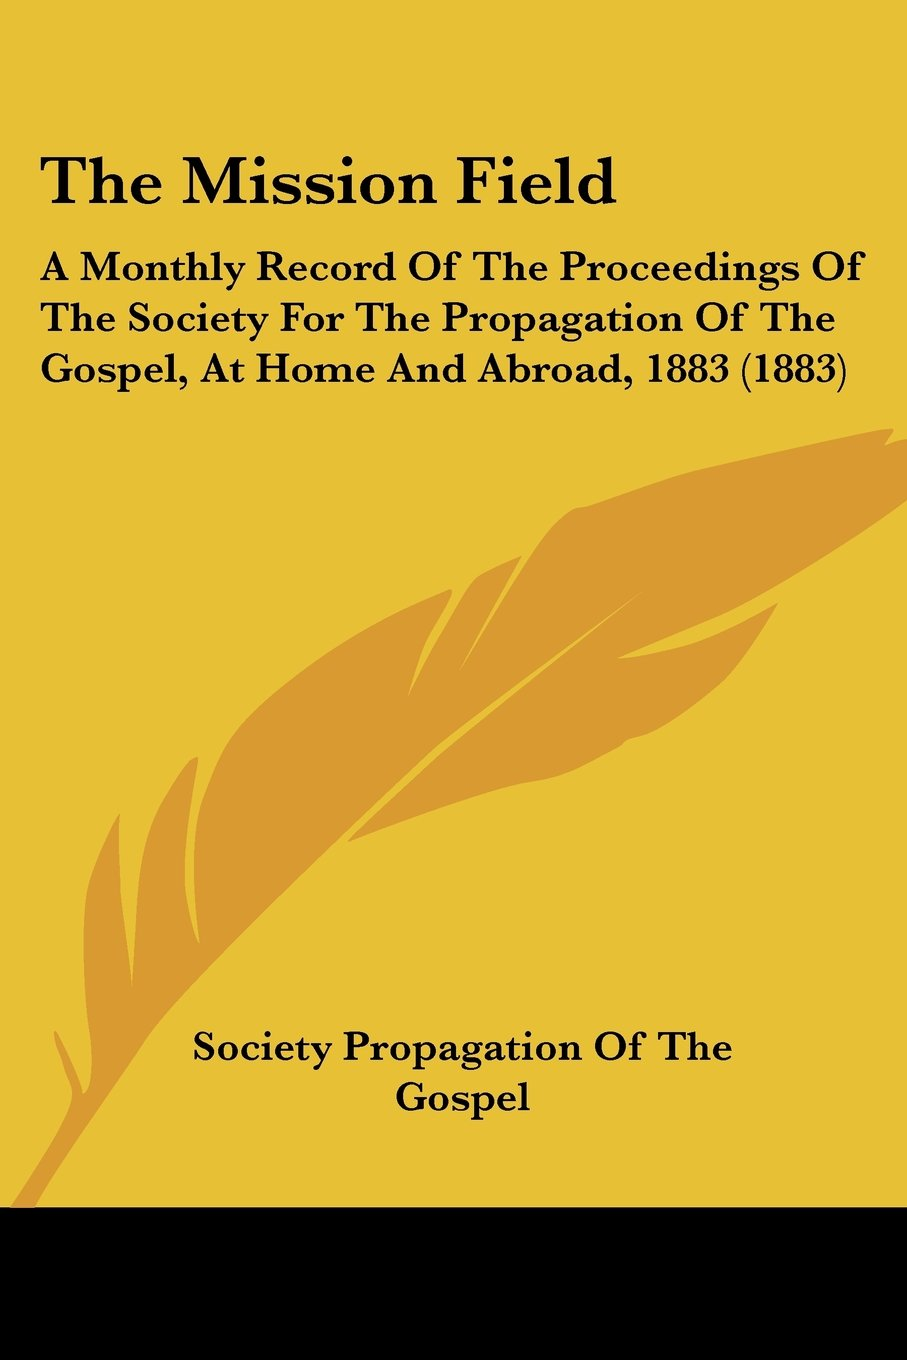 Download The Mission Field: A Monthly Record Of The Proceedings Of The Society For The Propagation Of The Gospel, At Home And Abroad, 1883 (1883) PDF